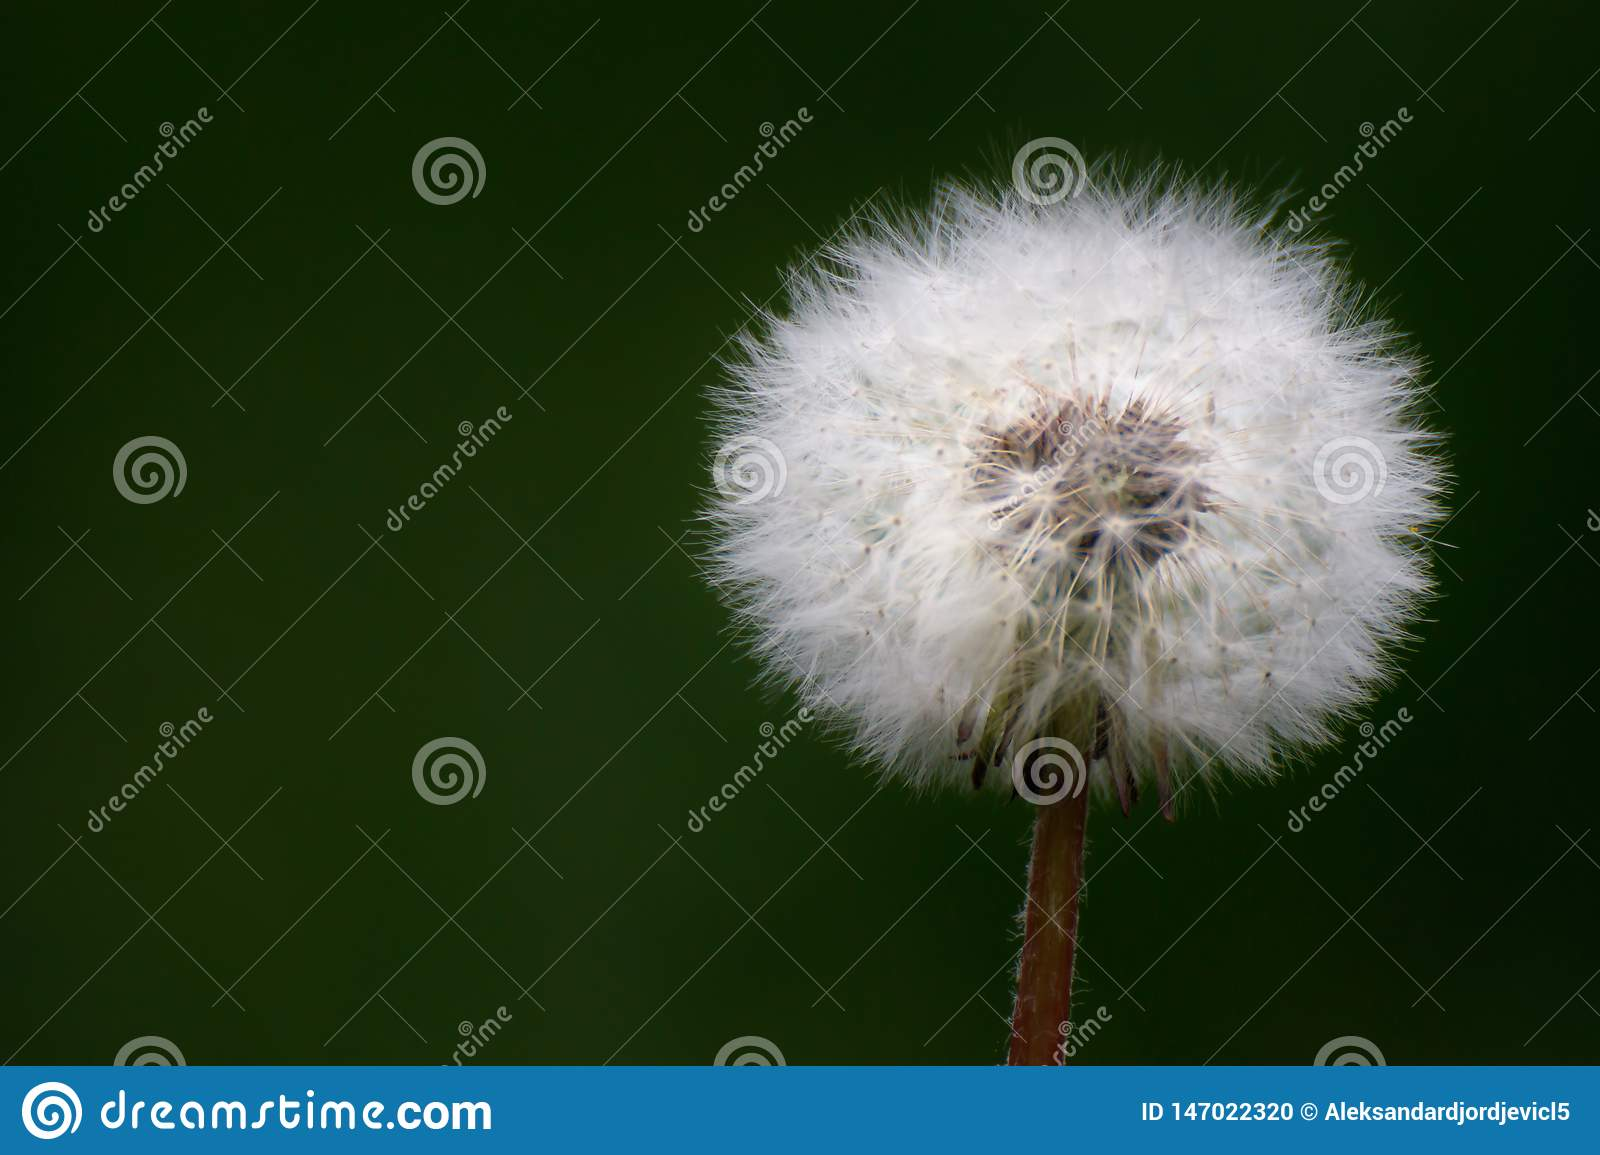 Dandelion flower close up with blurred background